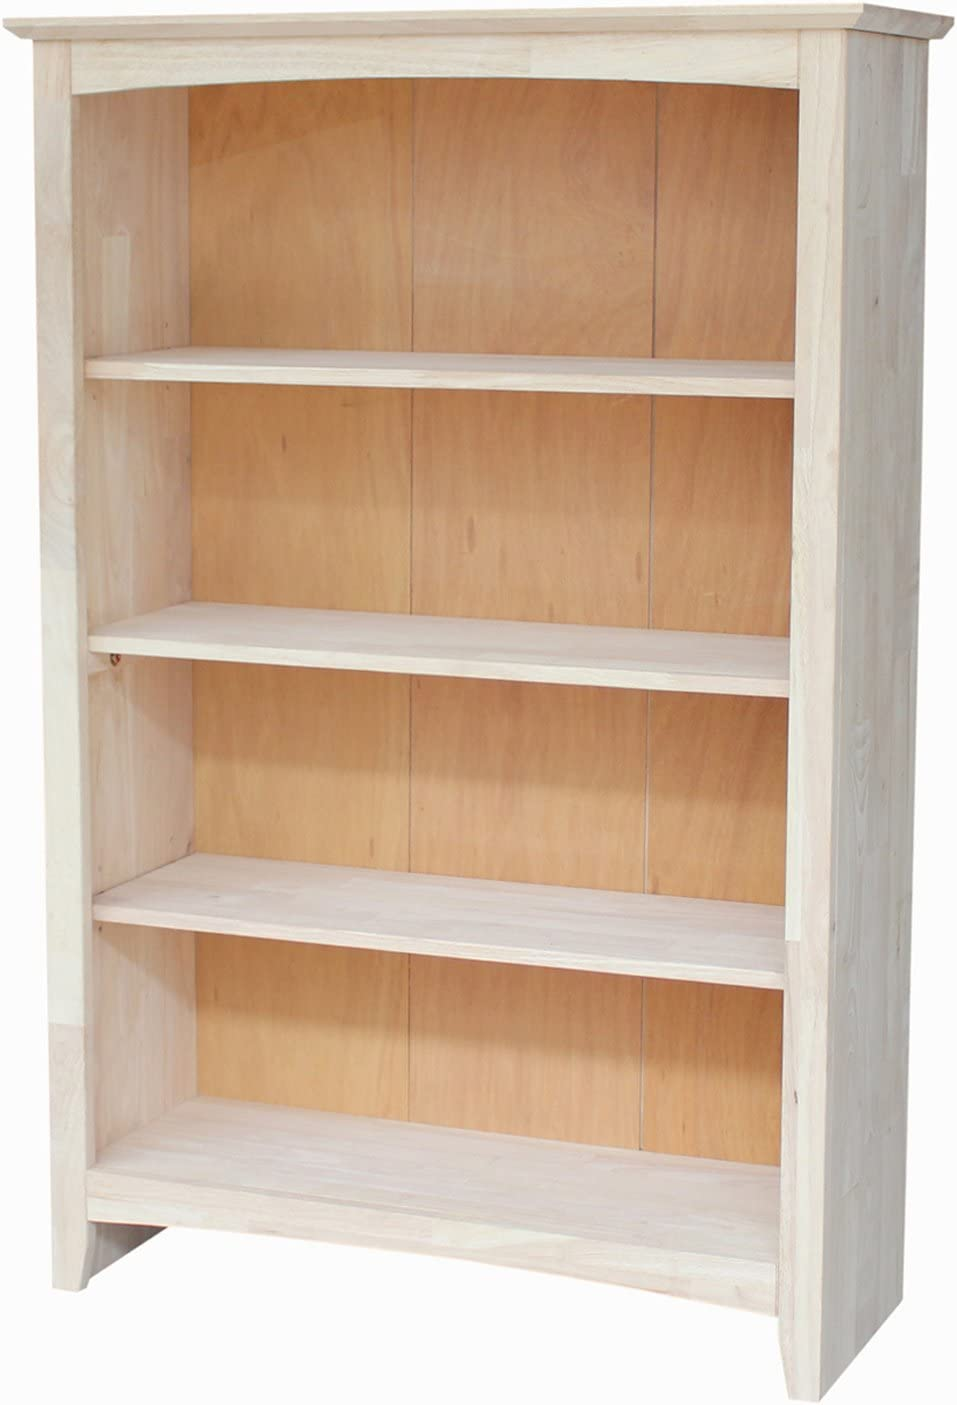 International Concepts Shaker Bookcase, 48-Inch, Unfinished